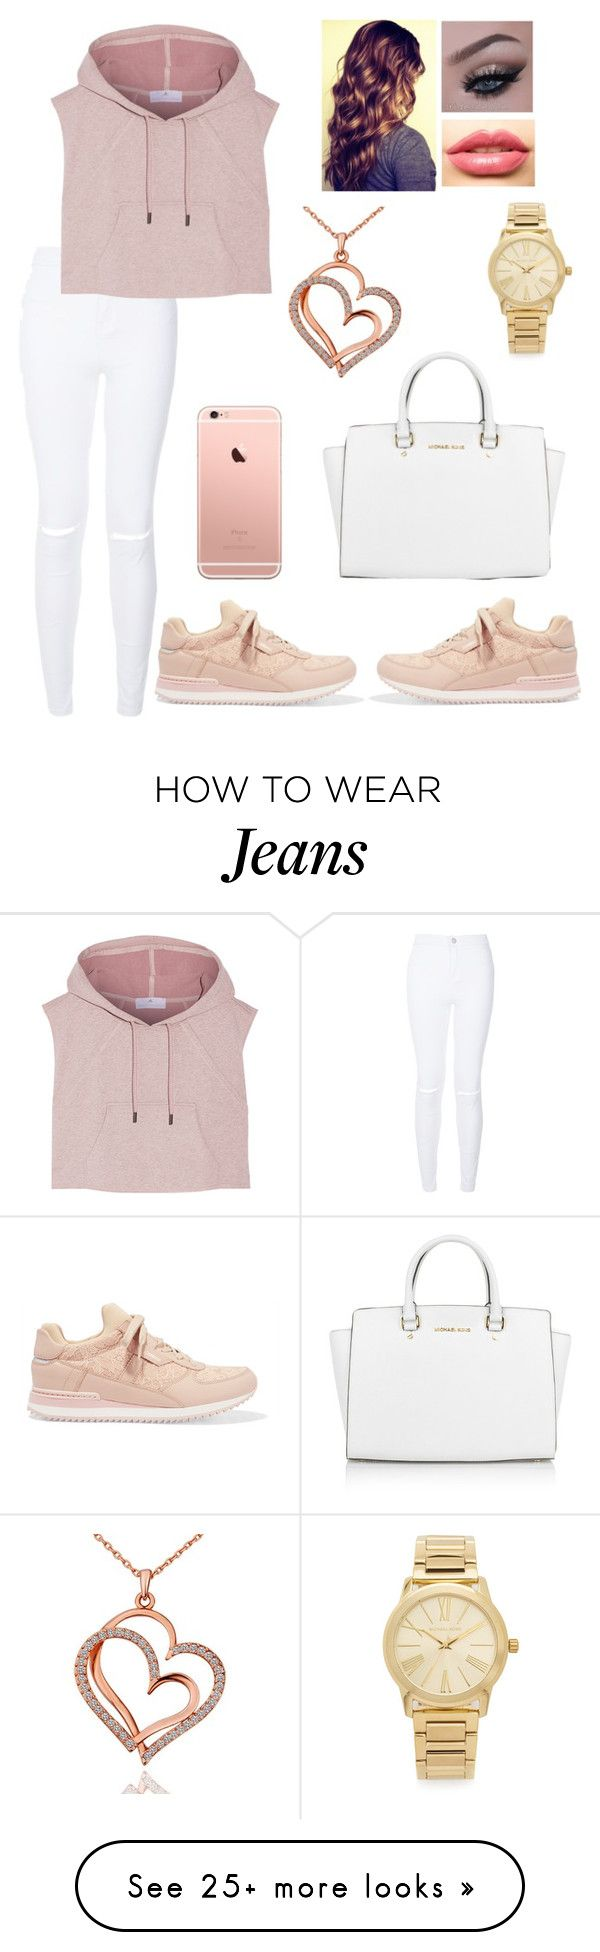 """""""Went to the Dunk contest in this"""" by blessed-with-beauty-and-rage on Polyvore featuring adidas, Dolce&Gabbana, Michael Kors, LASplash, women's clothing, women, female, woman, misses and juniors"""